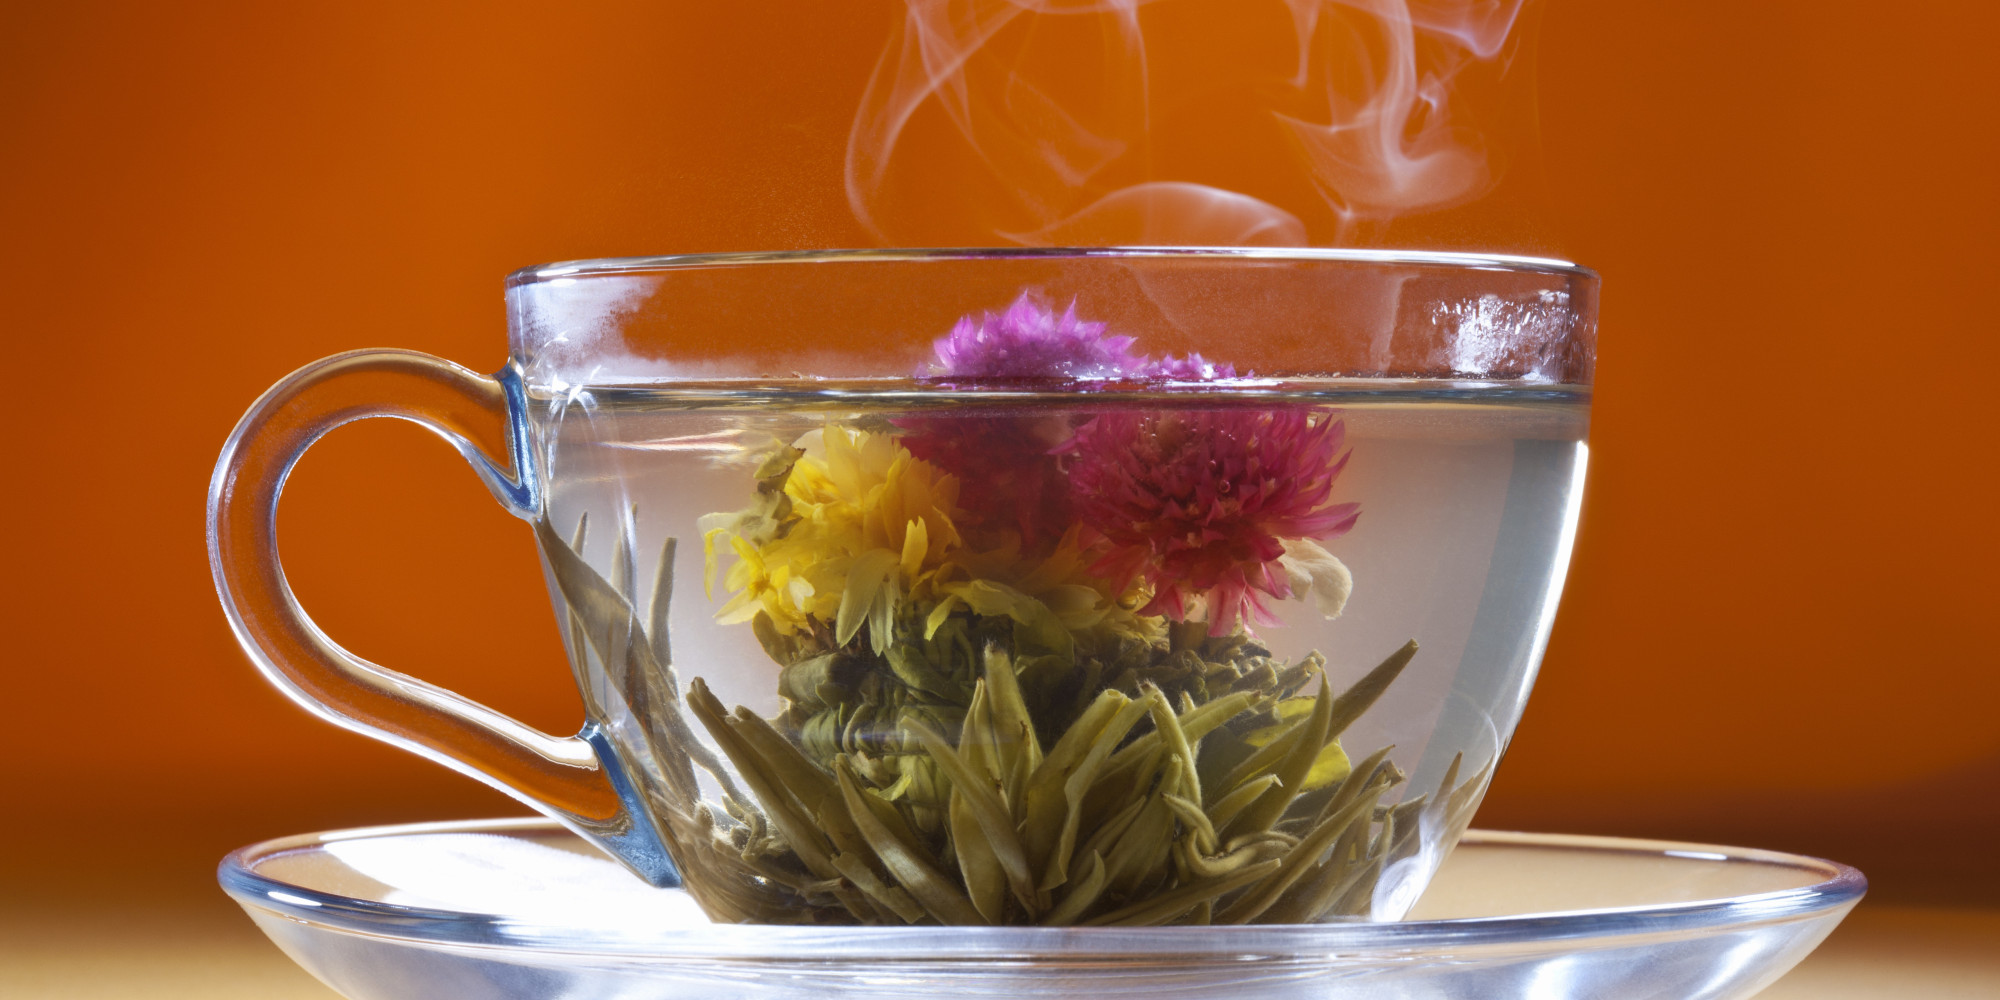 Chinese flower tea - Do You Think Flowering Tea Is Revolting Or Amazing Photos The Huffington Post